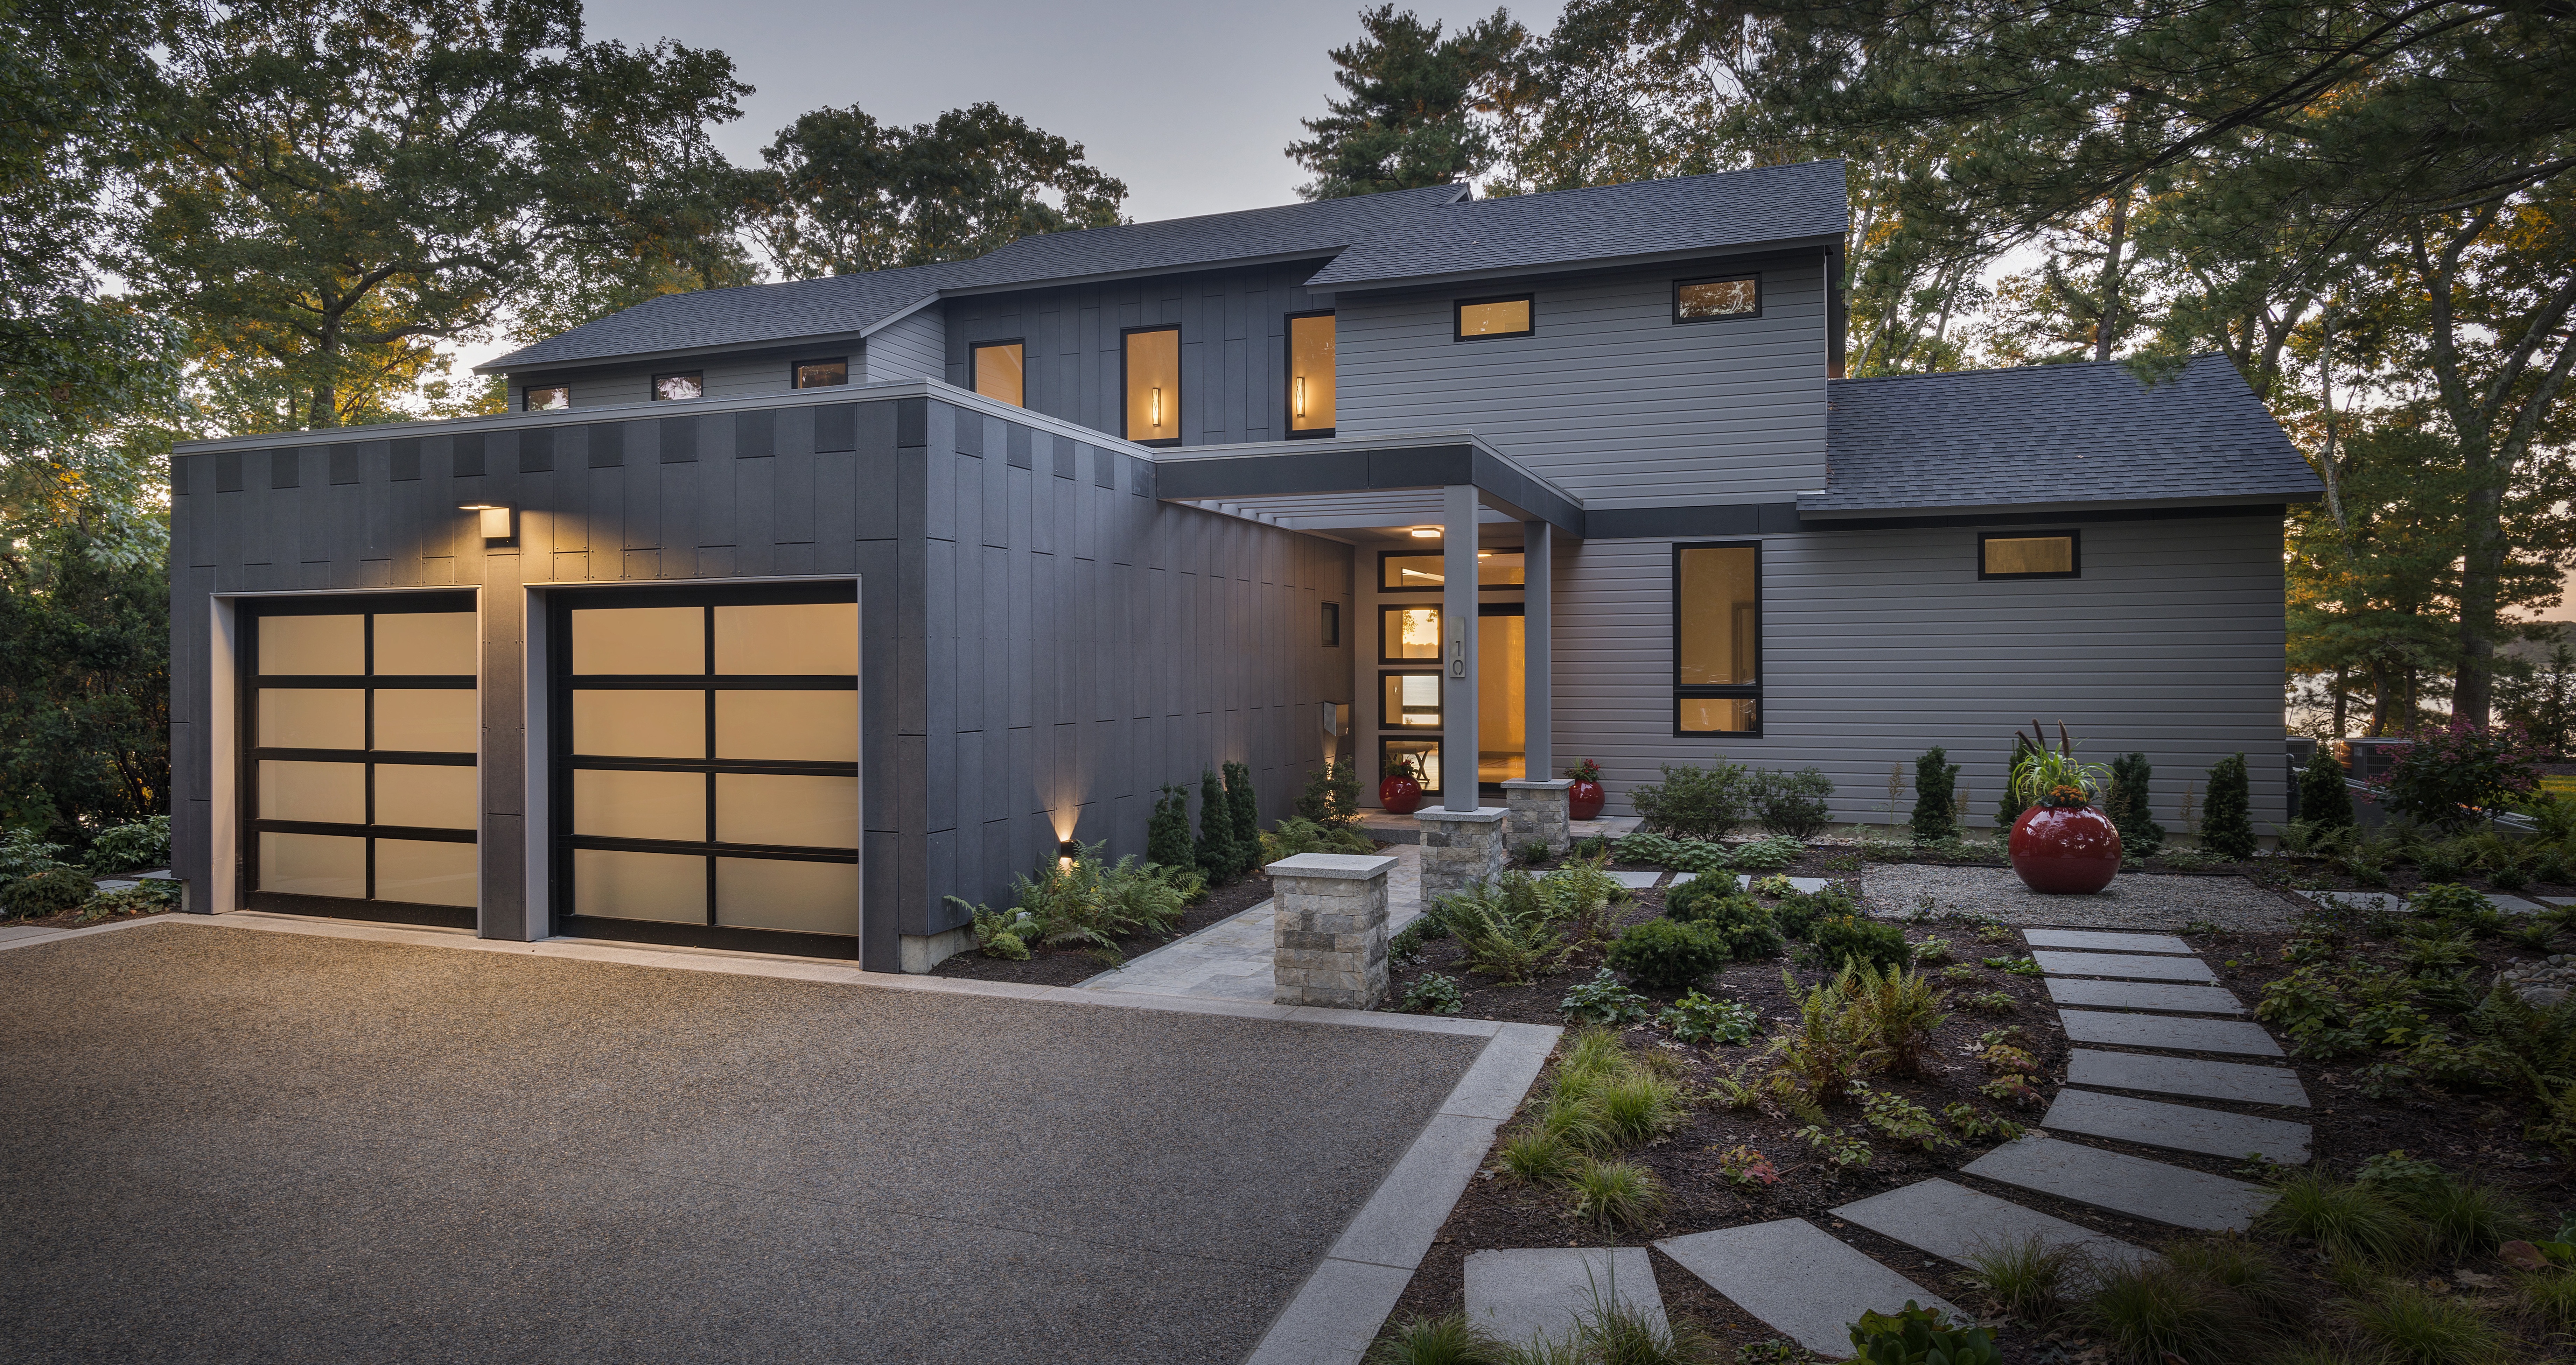 Kite_1532_Hundred Acre Cove_Greenspan Residence_Exterior_Night_Front